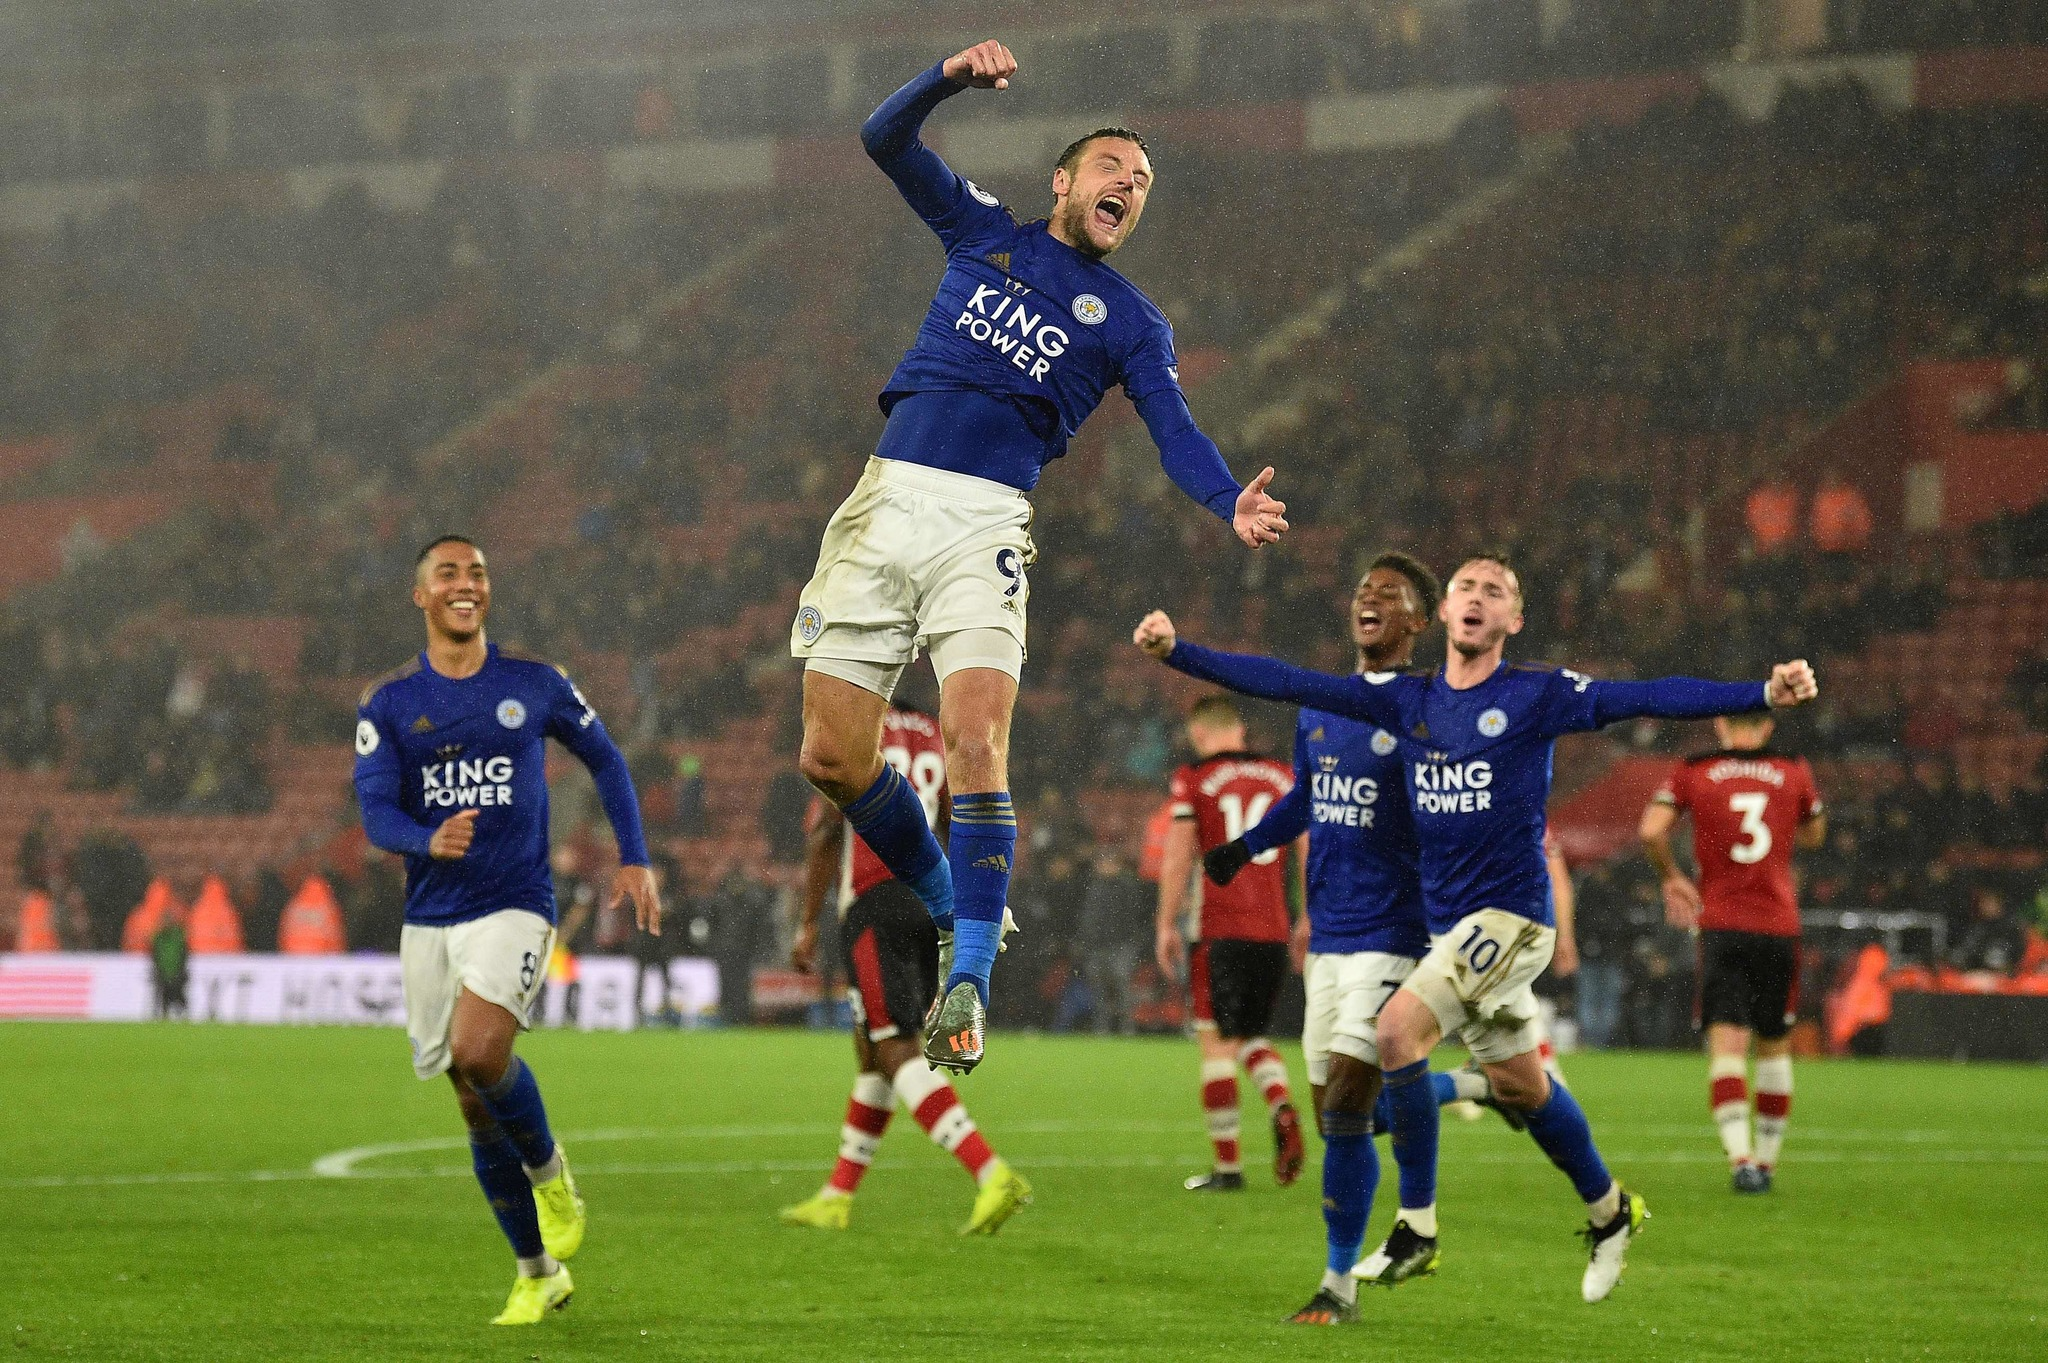 <HIT>Leicester</HIT> Citys English striker Jamie Vardy celebrates scoring his teams ninth goal from the penalty spot during the English Premier League football match between Southampton and <HIT>Leicester</HIT> City at St Marys Stadium in Southampton, southern England on October 25, 2019. - <HIT>Leicester</HIT> won 9-0. (Photo by Glyn KIRK / AFP) / RESTRICTED TO EDITORIAL USE. No use with unauthorized audio, video, data, fixture lists, club/league logos or live services. Online in-match use limited to 120 images. An additional 40 images may be used in extra time. No video emulation. Social media in-match use limited to 120 images. An additional 40 images may be used in extra time. No use in betting publications, games or single club/league/player publications. /